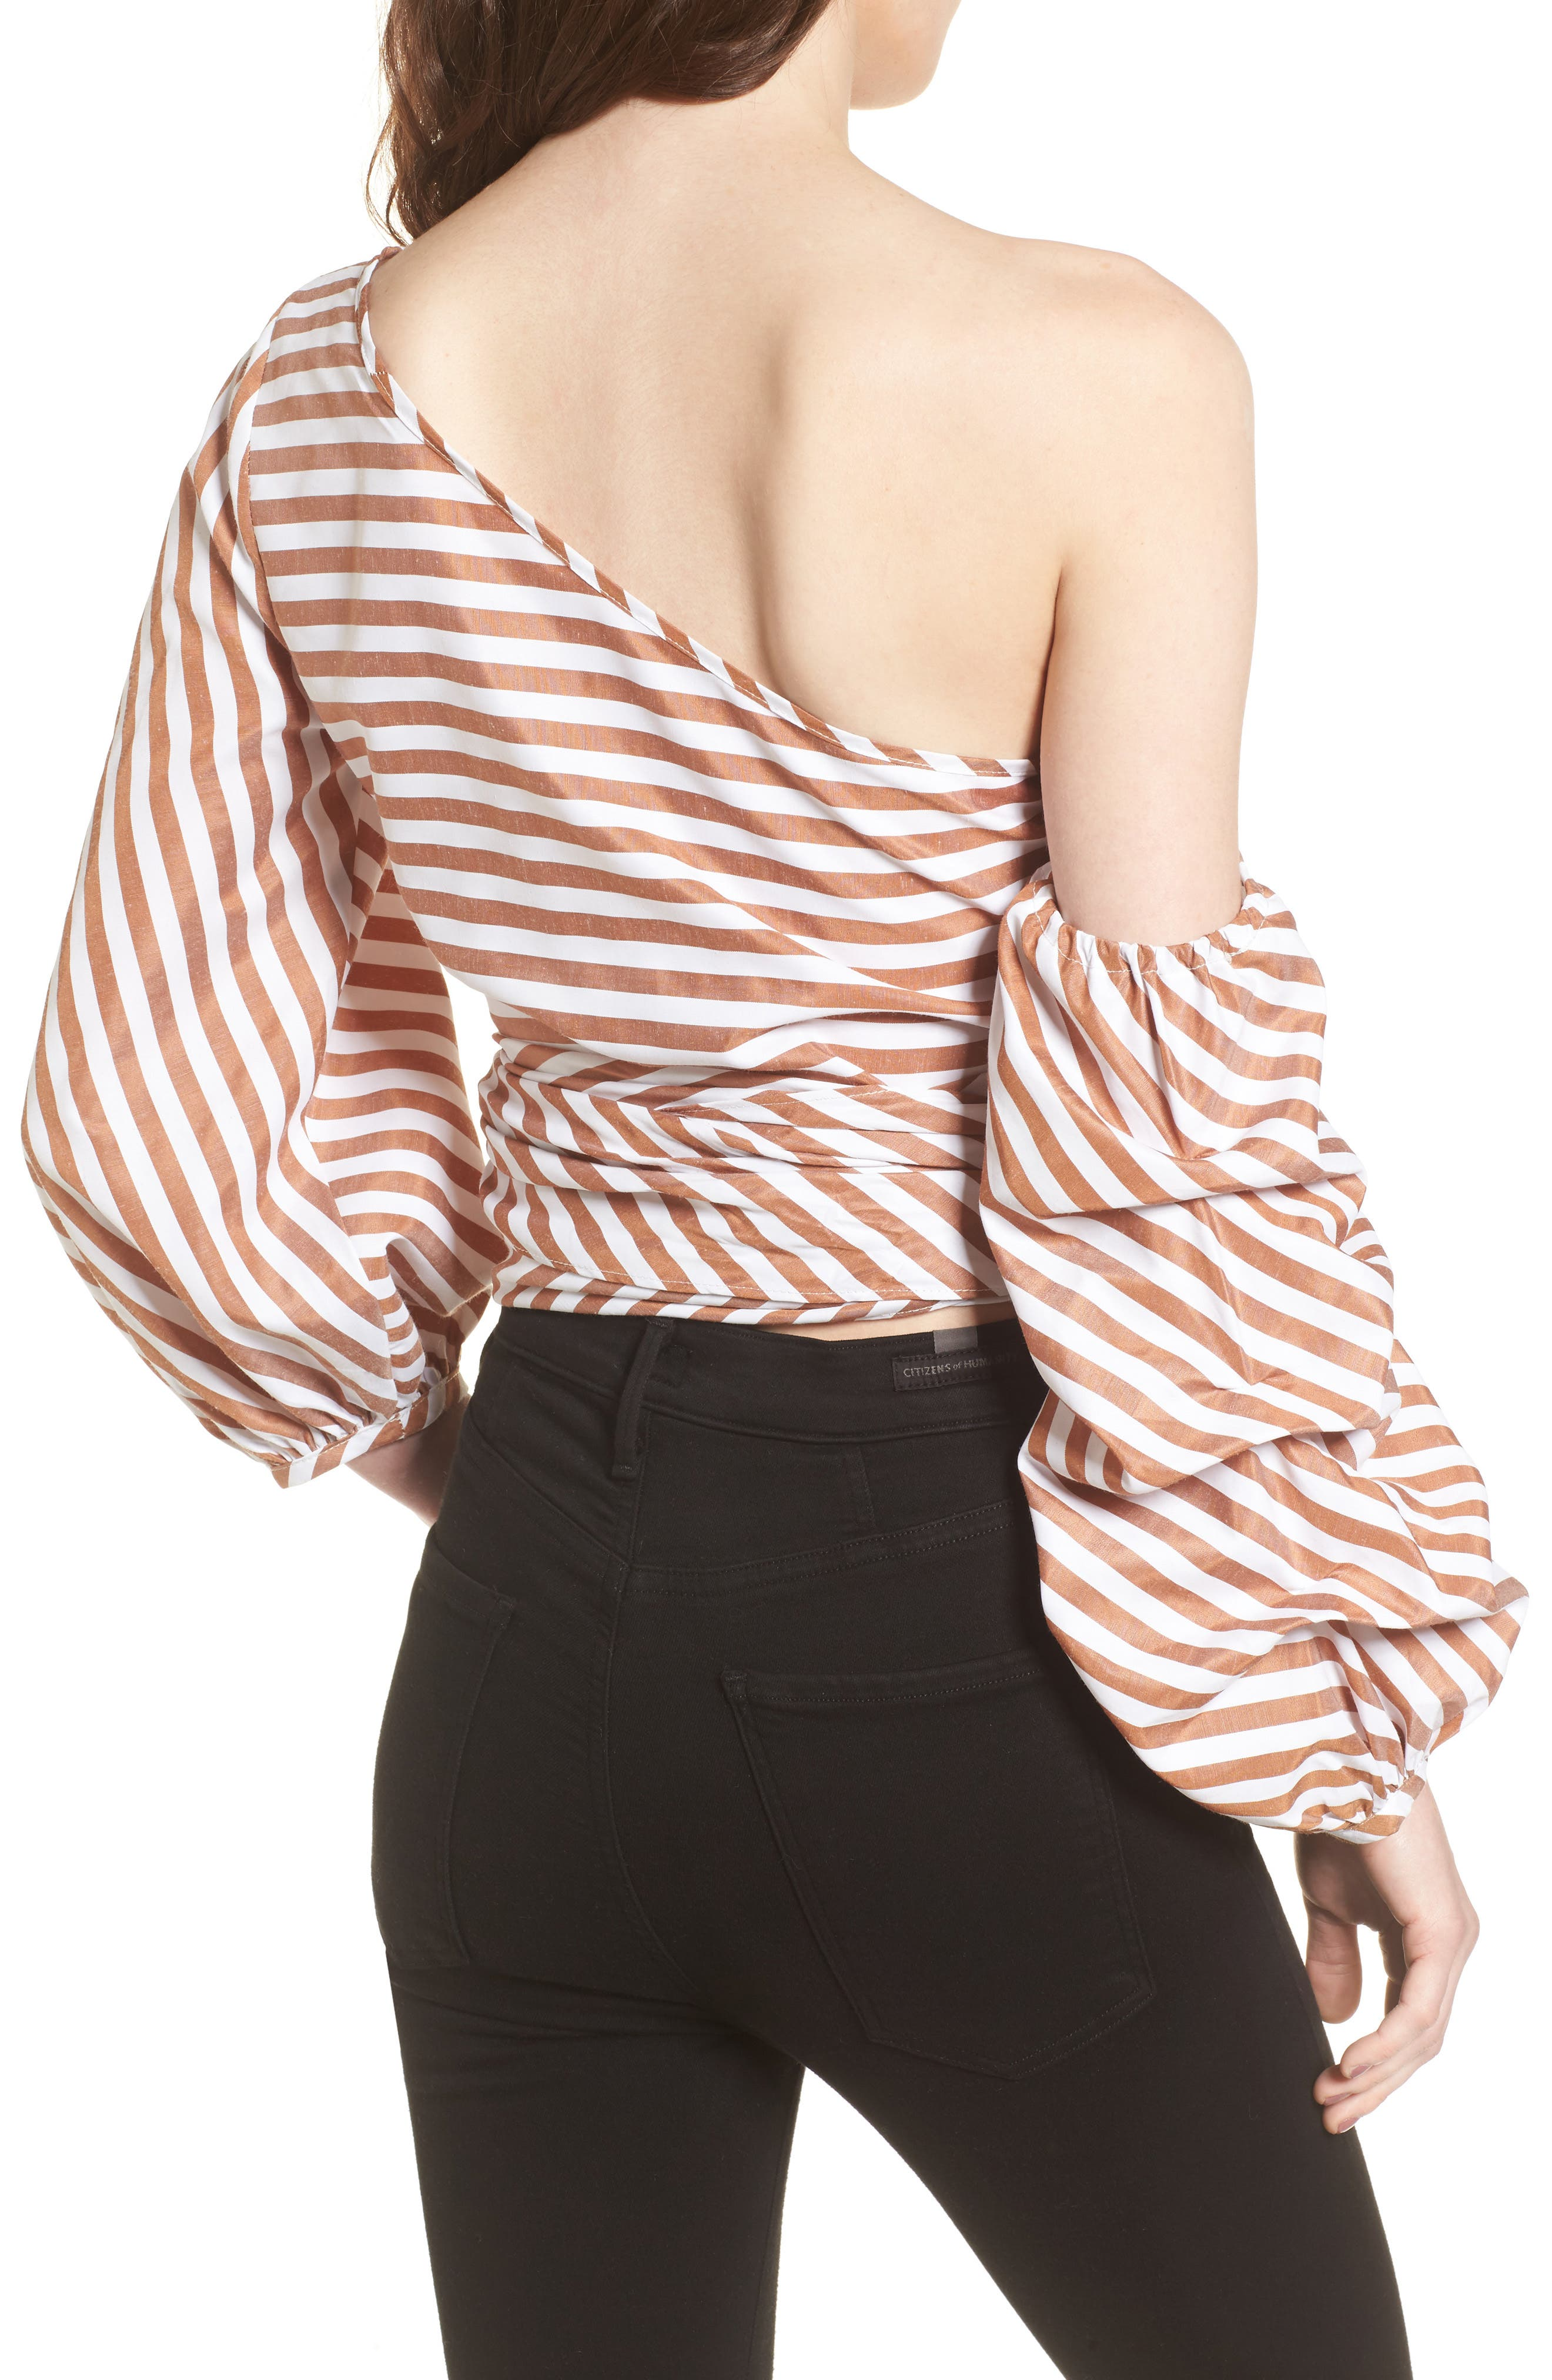 Wrap Me in Love One-Shoulder Top,                             Alternate thumbnail 2, color,                             200